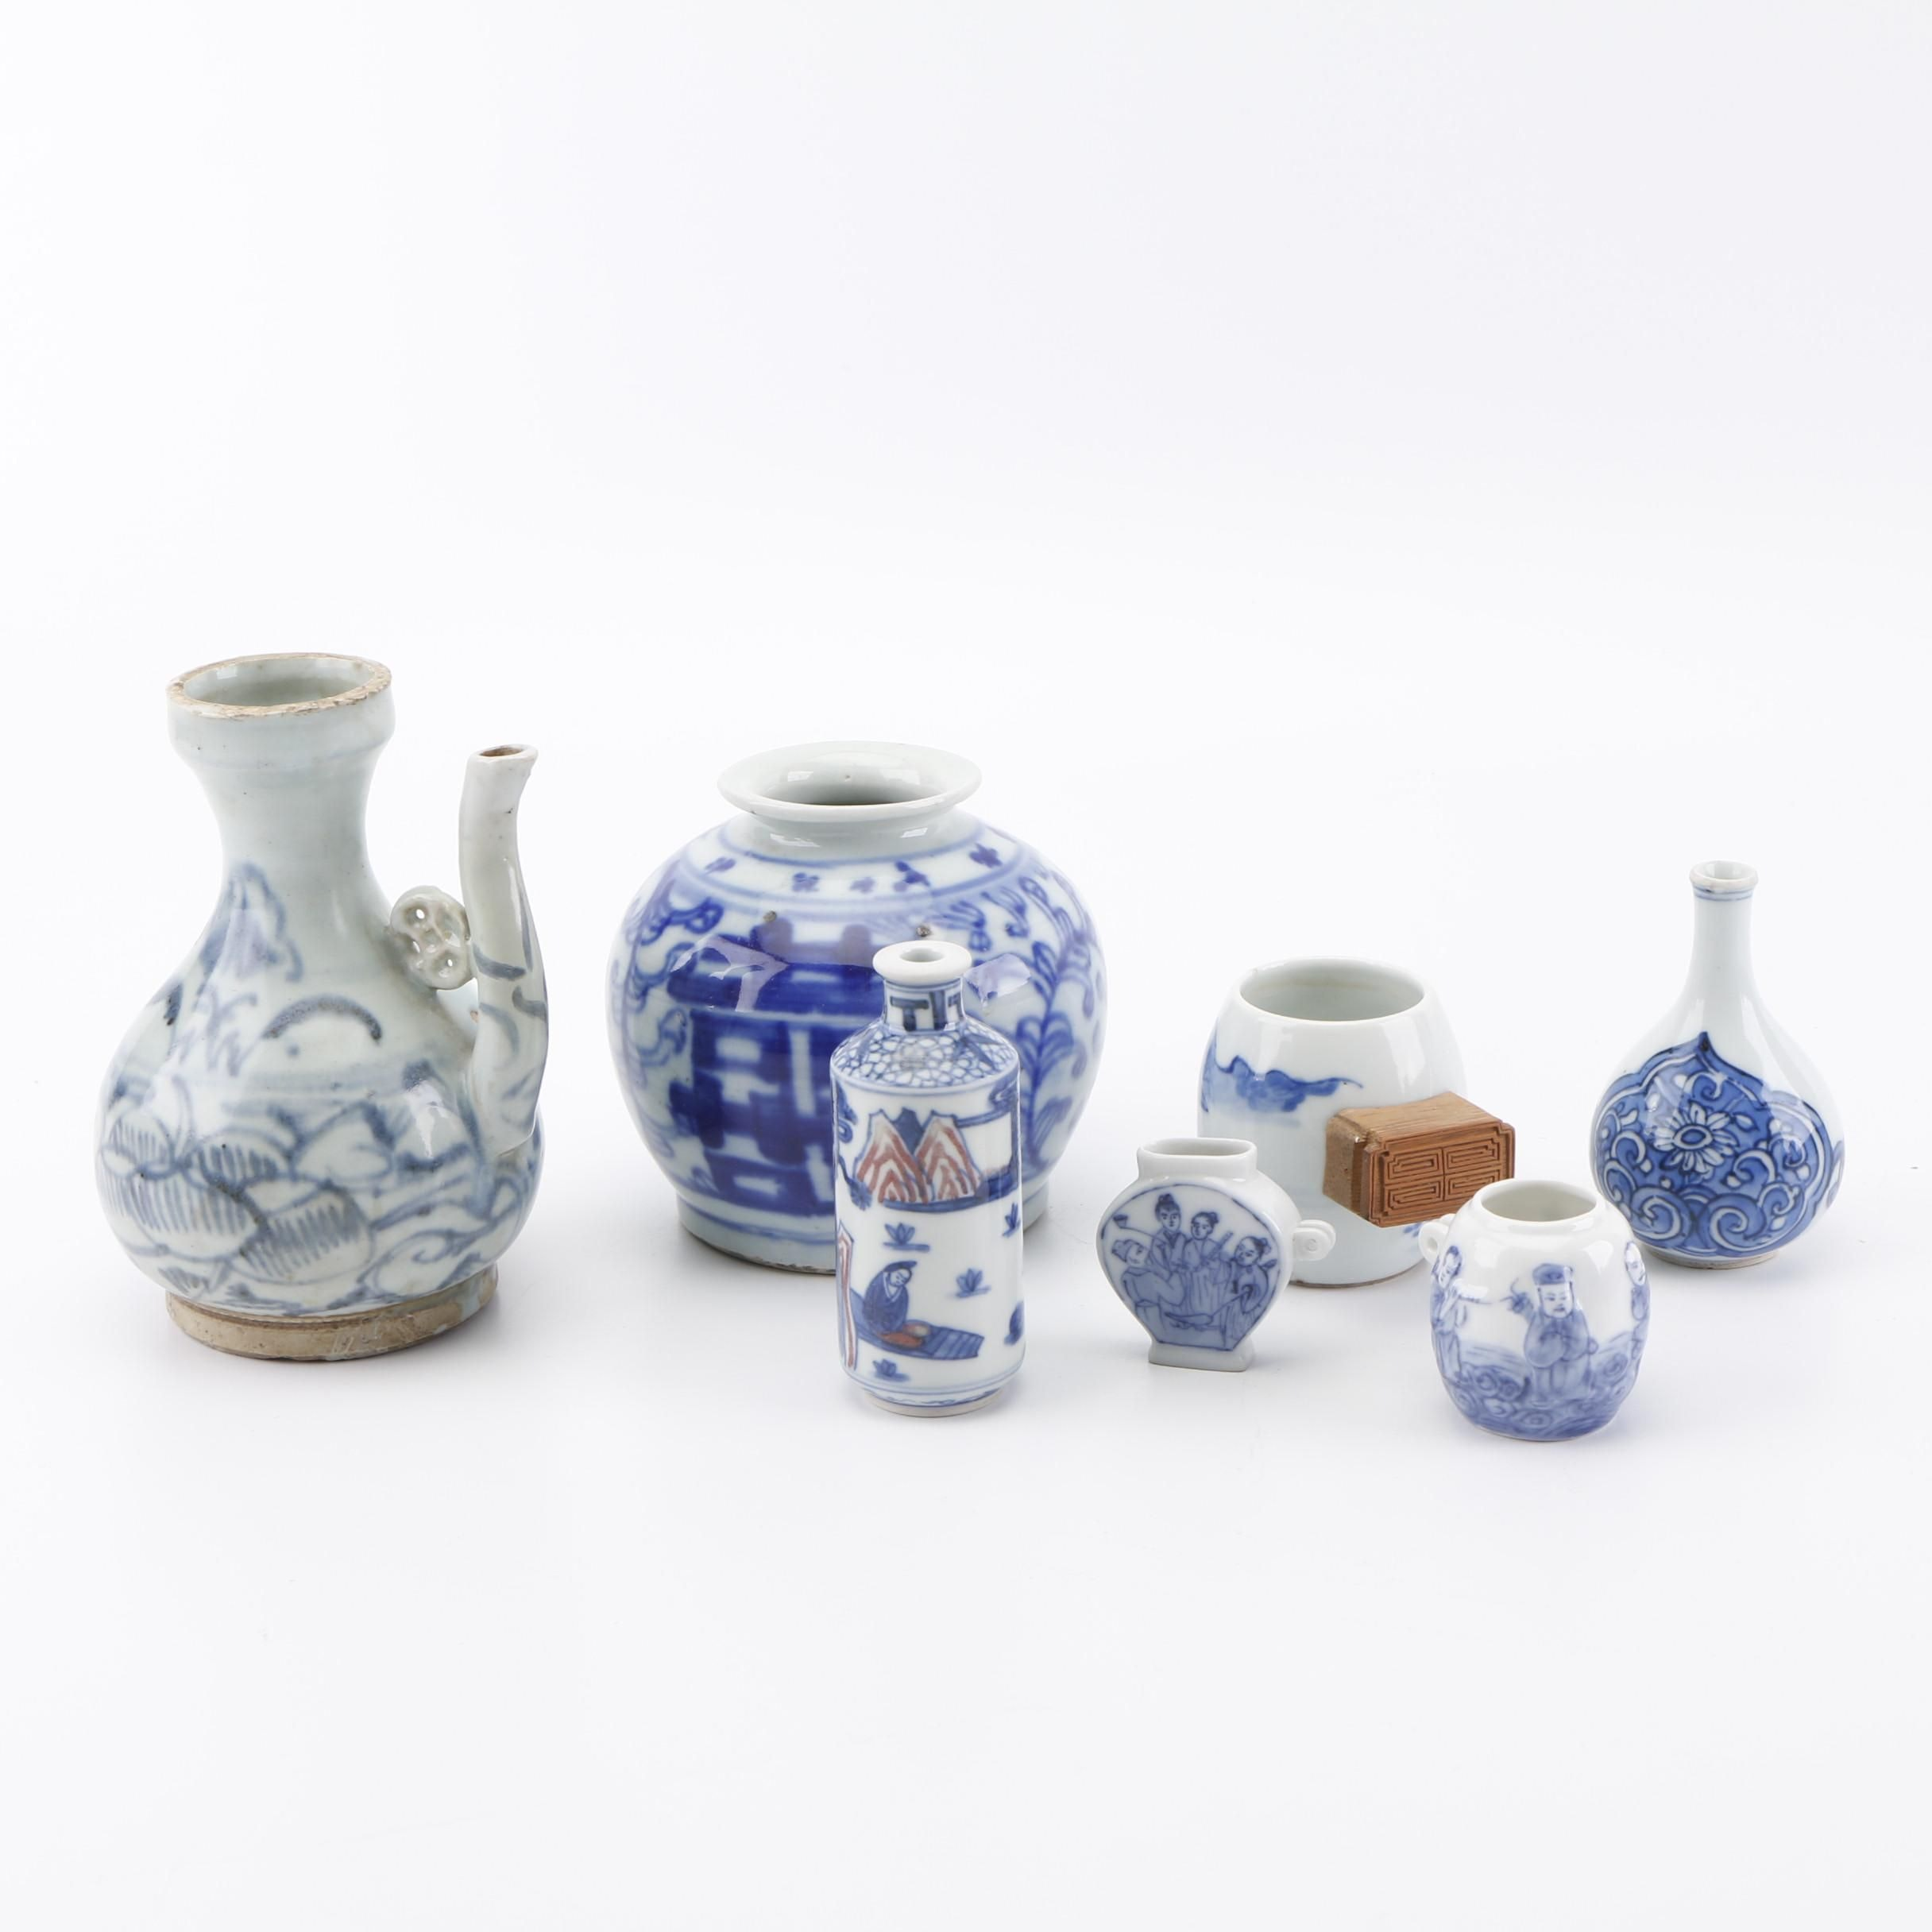 Miniature Chinese Blue and White Vases and Pots